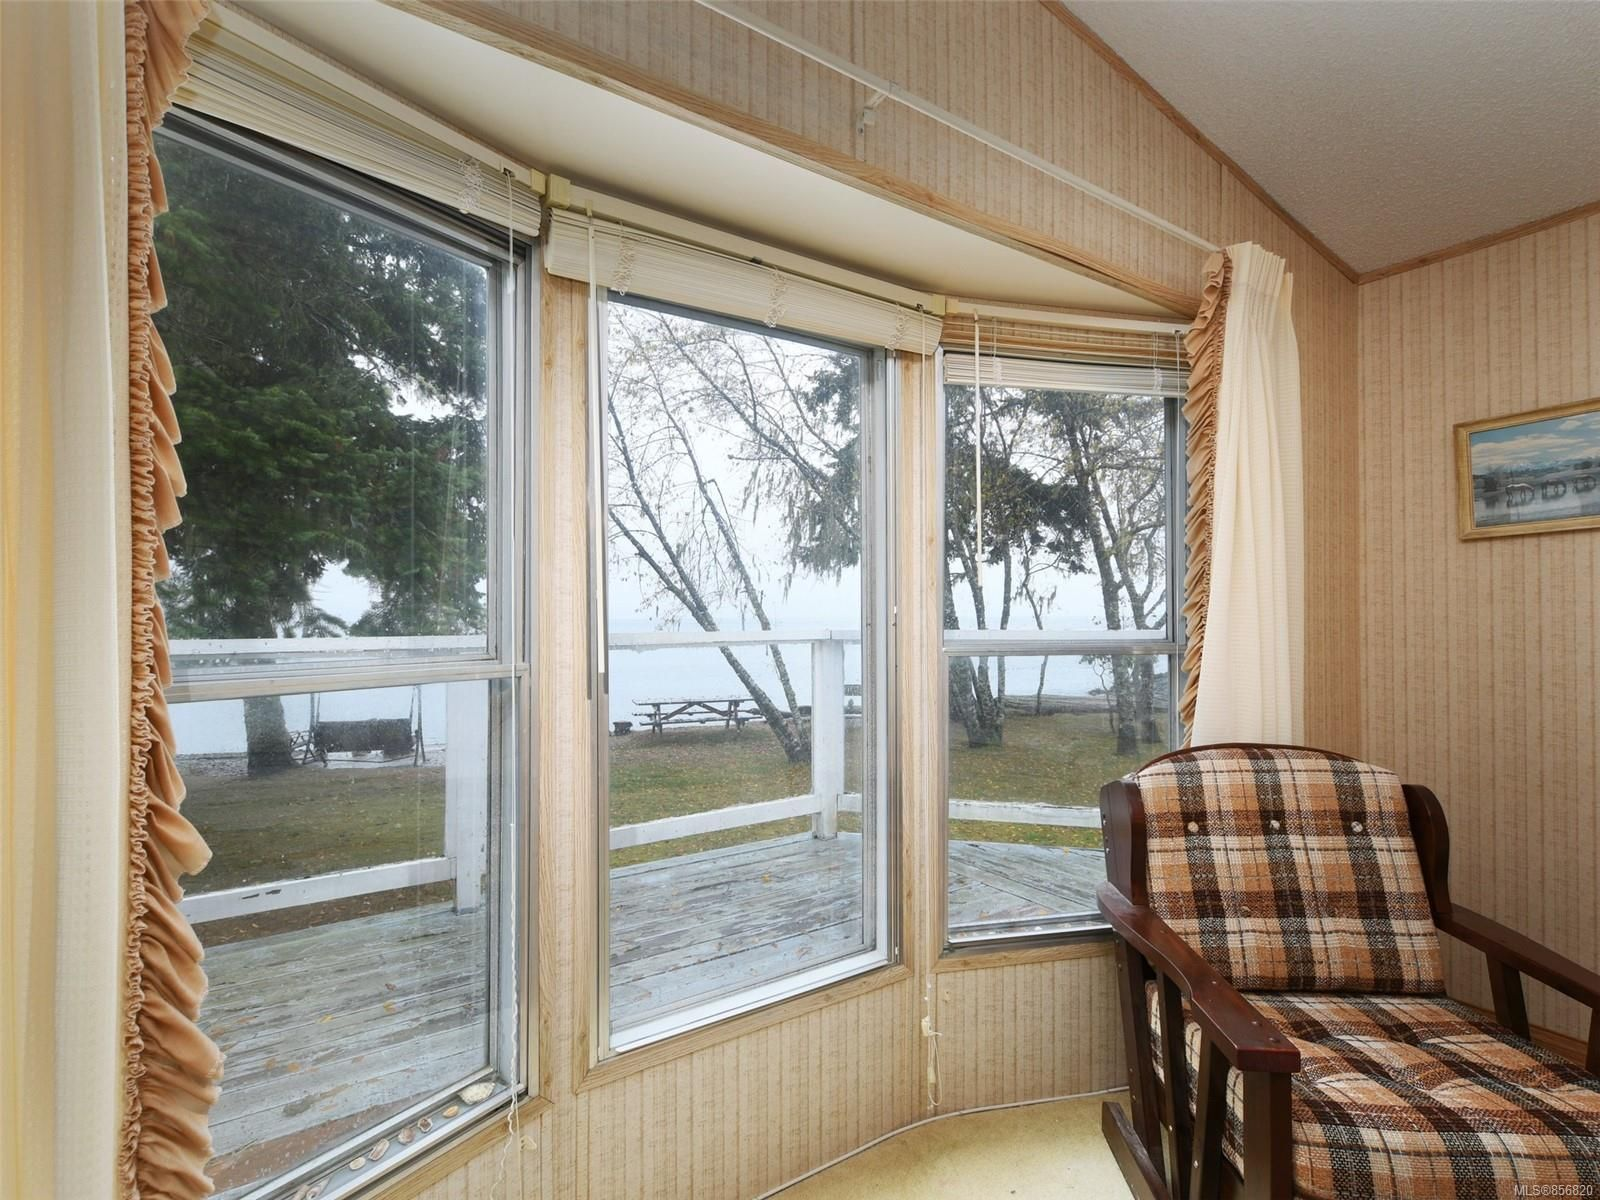 Photo 6: Photos: 25 7871 West Coast Rd in : Sk Kemp Lake Manufactured Home for sale (Sooke)  : MLS®# 856820